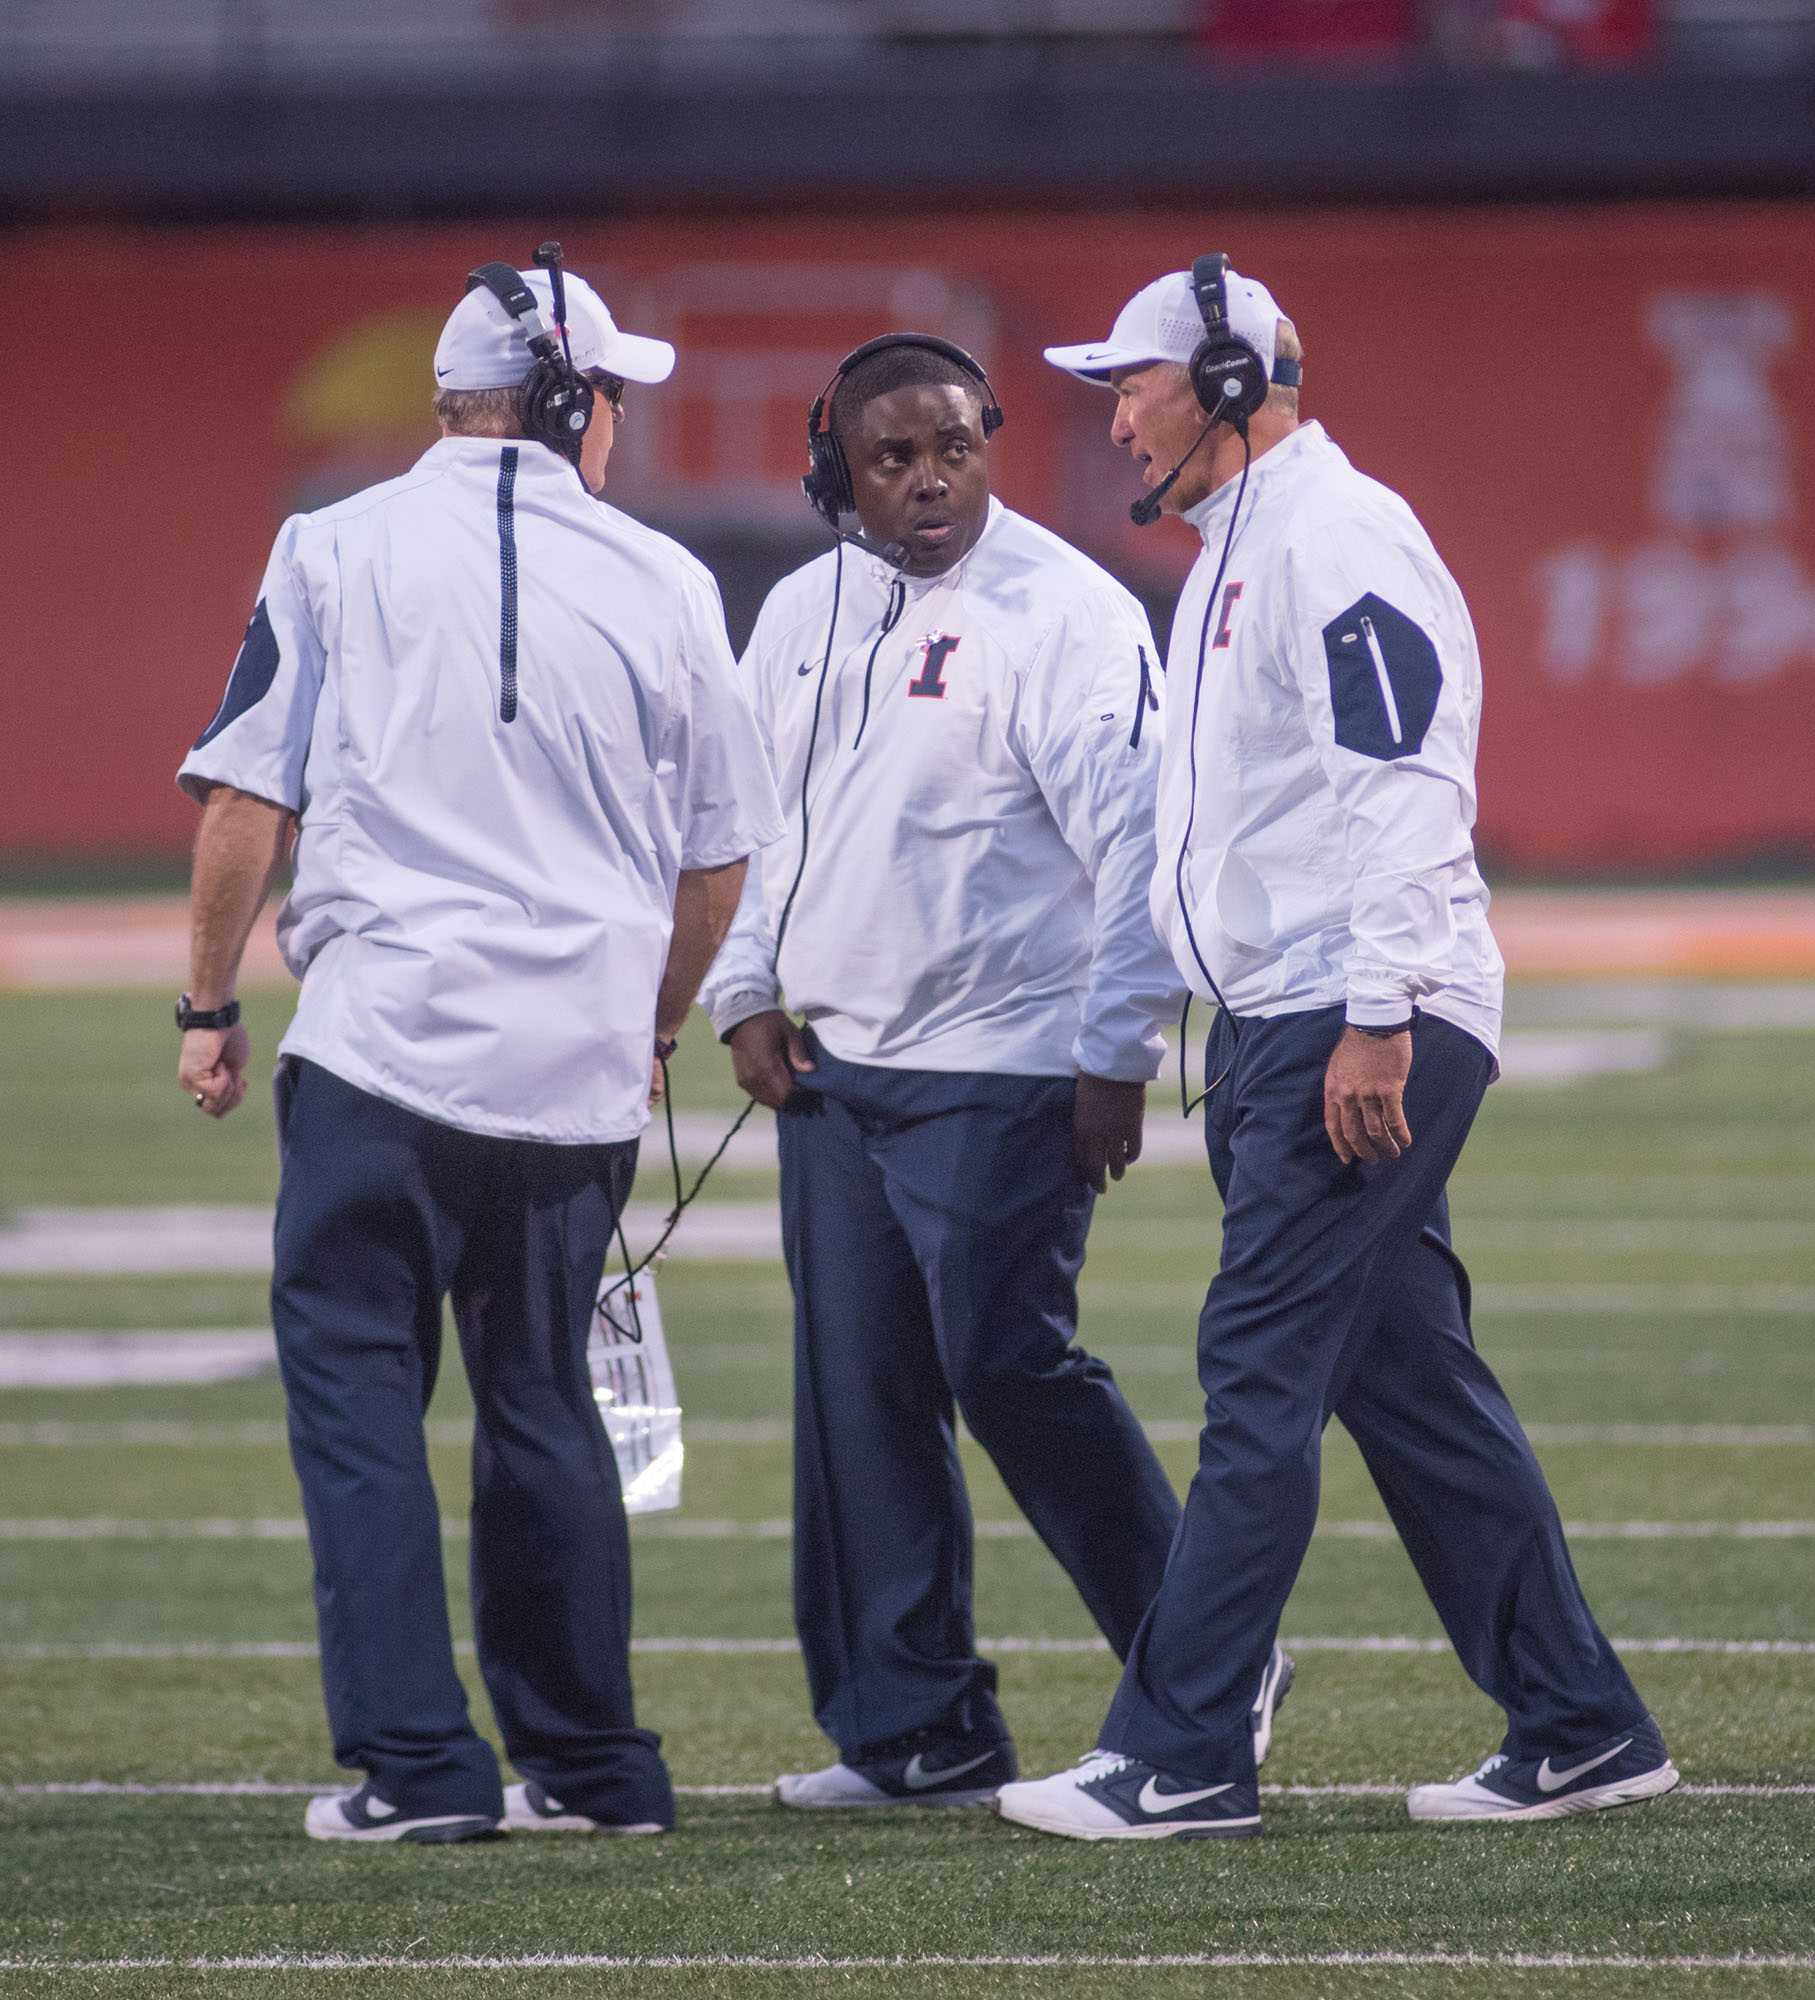 Illinois coaches Mike Ward (left), Tim Banks (center) and Bill Cubit converse on the field during Saturday's game against Nebraska at Memorial Stadium. Illinois won 14-13.